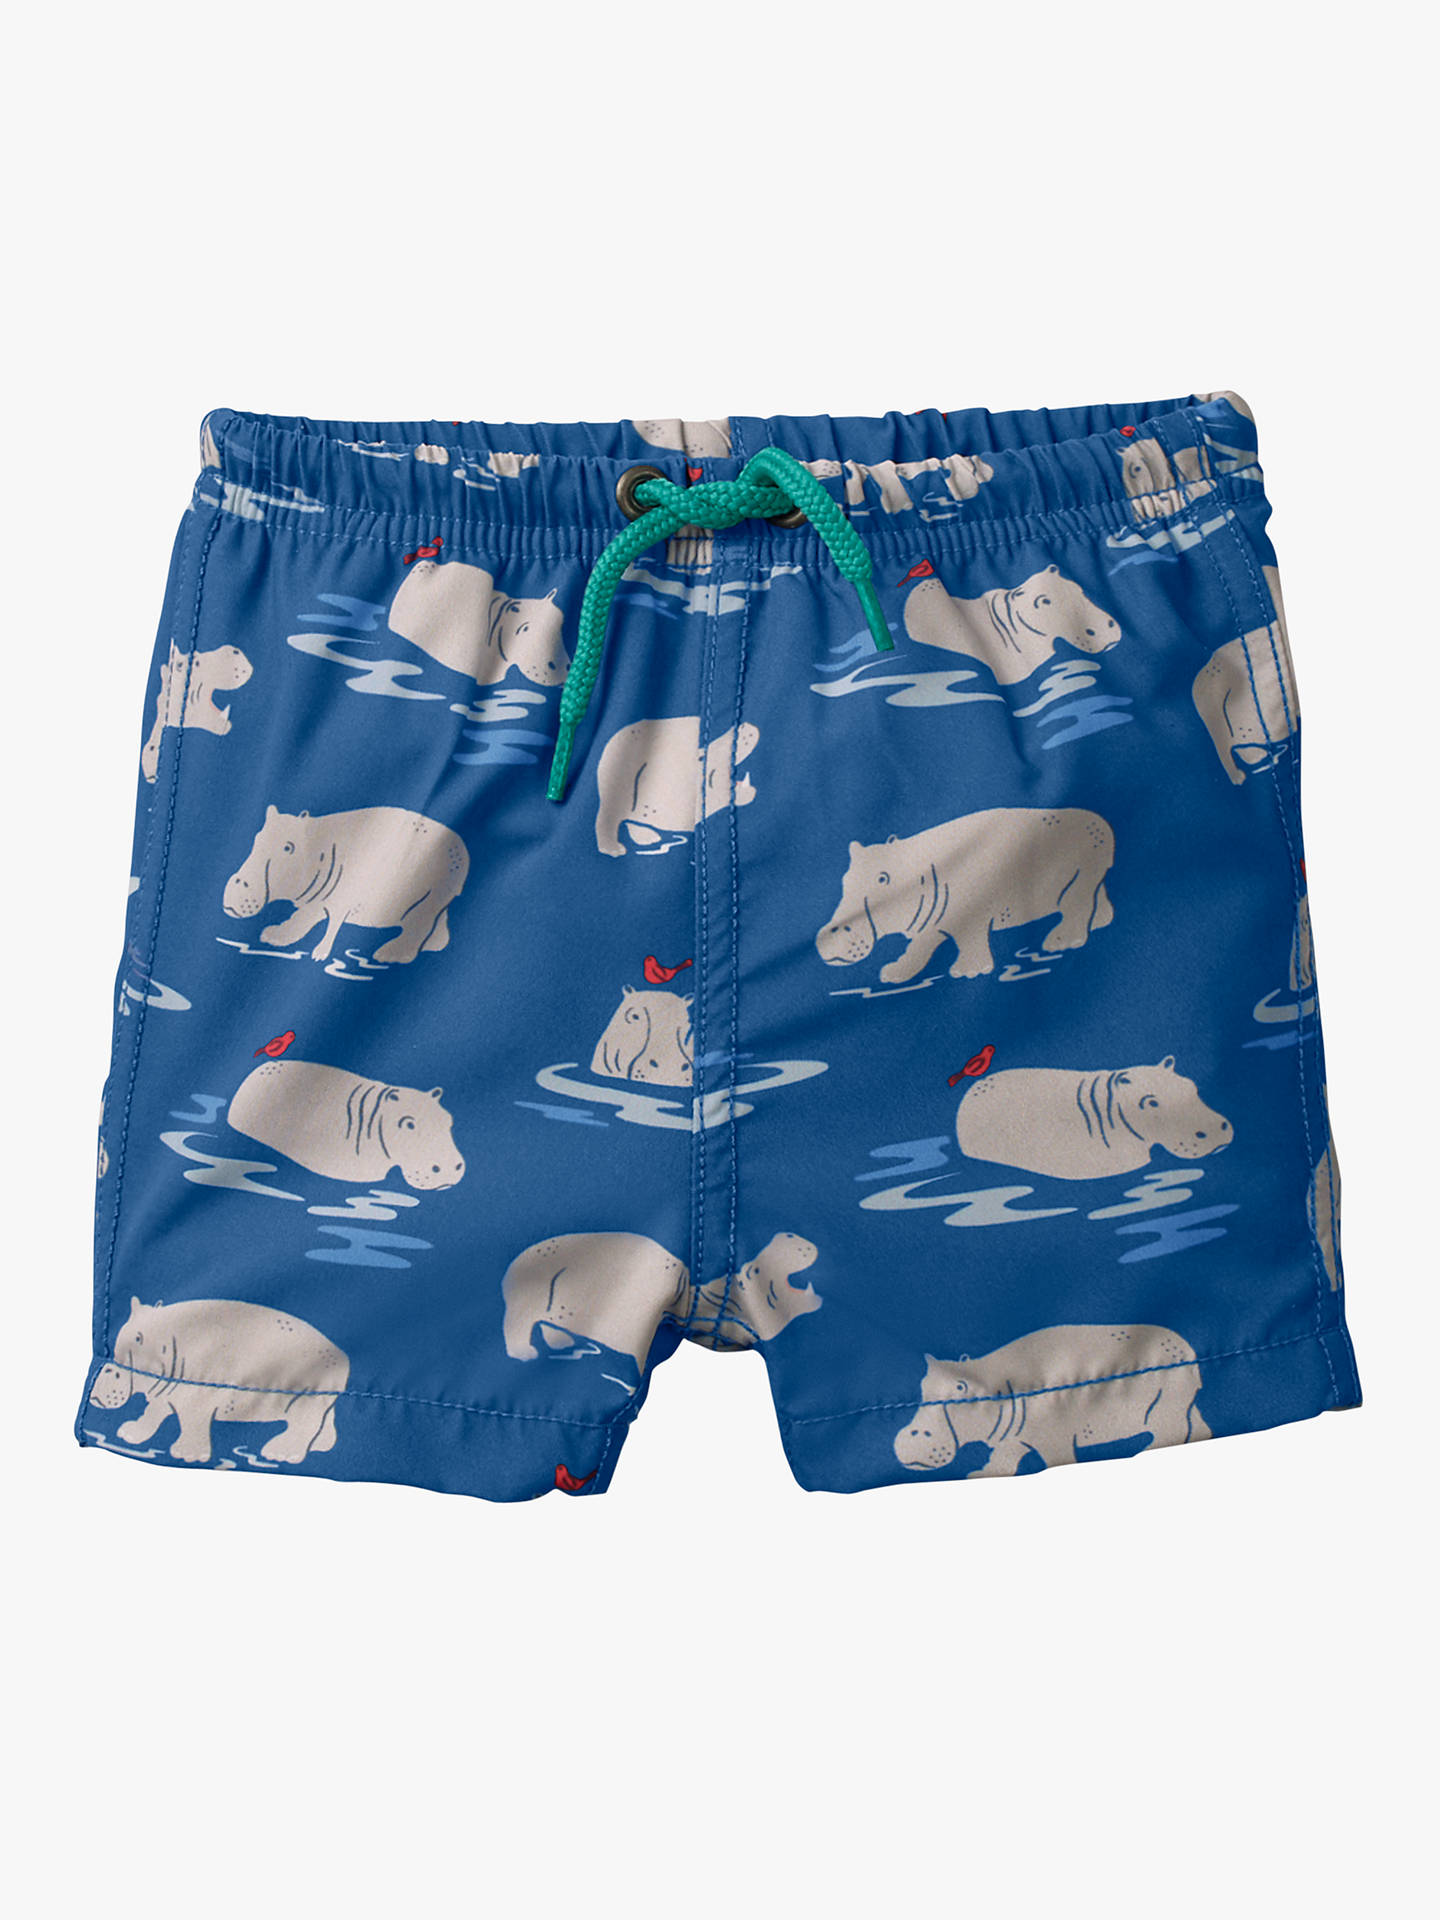 7a3d4cb43b Buy Mini Boden Baby Swimming Trunks, Lake Blue, 3-6 months Online at ...